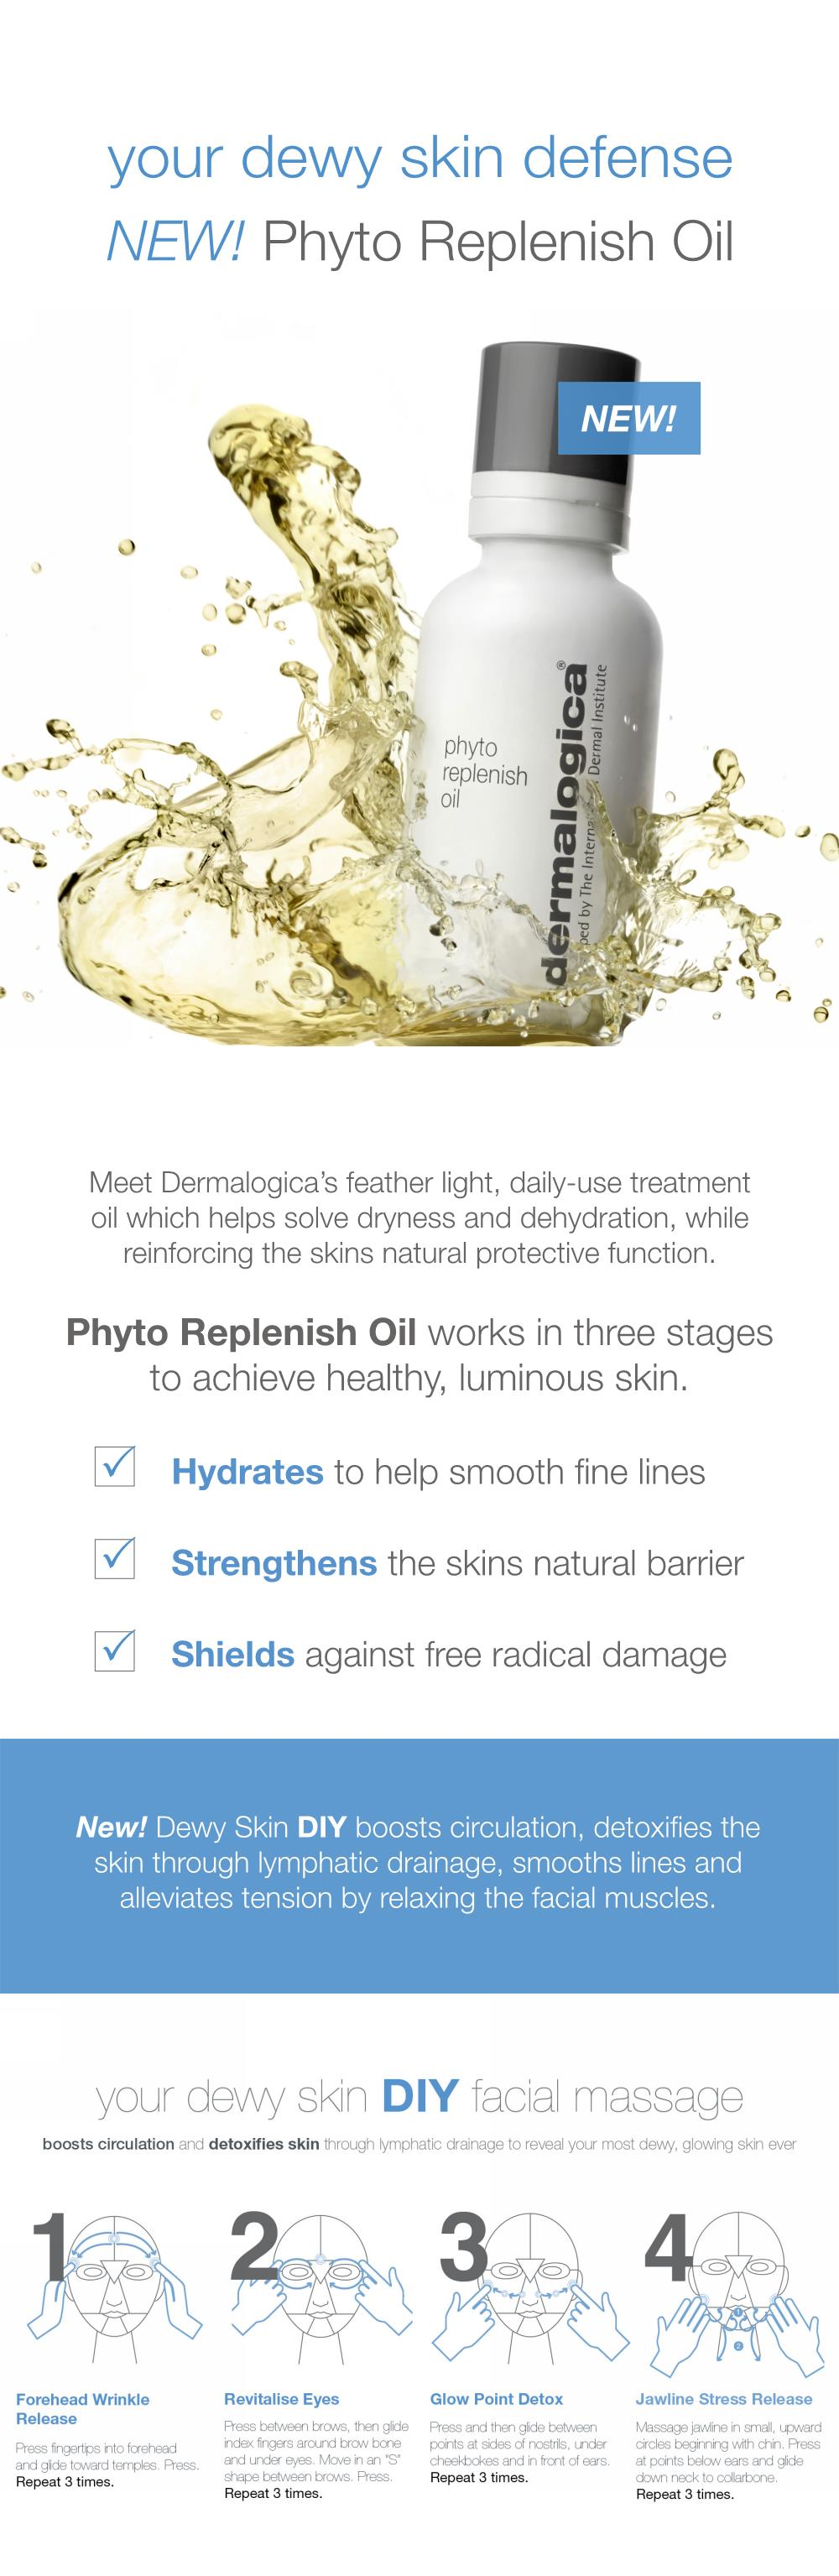 Dermalogica - Your Dewy Skin Defence - Phyto Replenish Oil